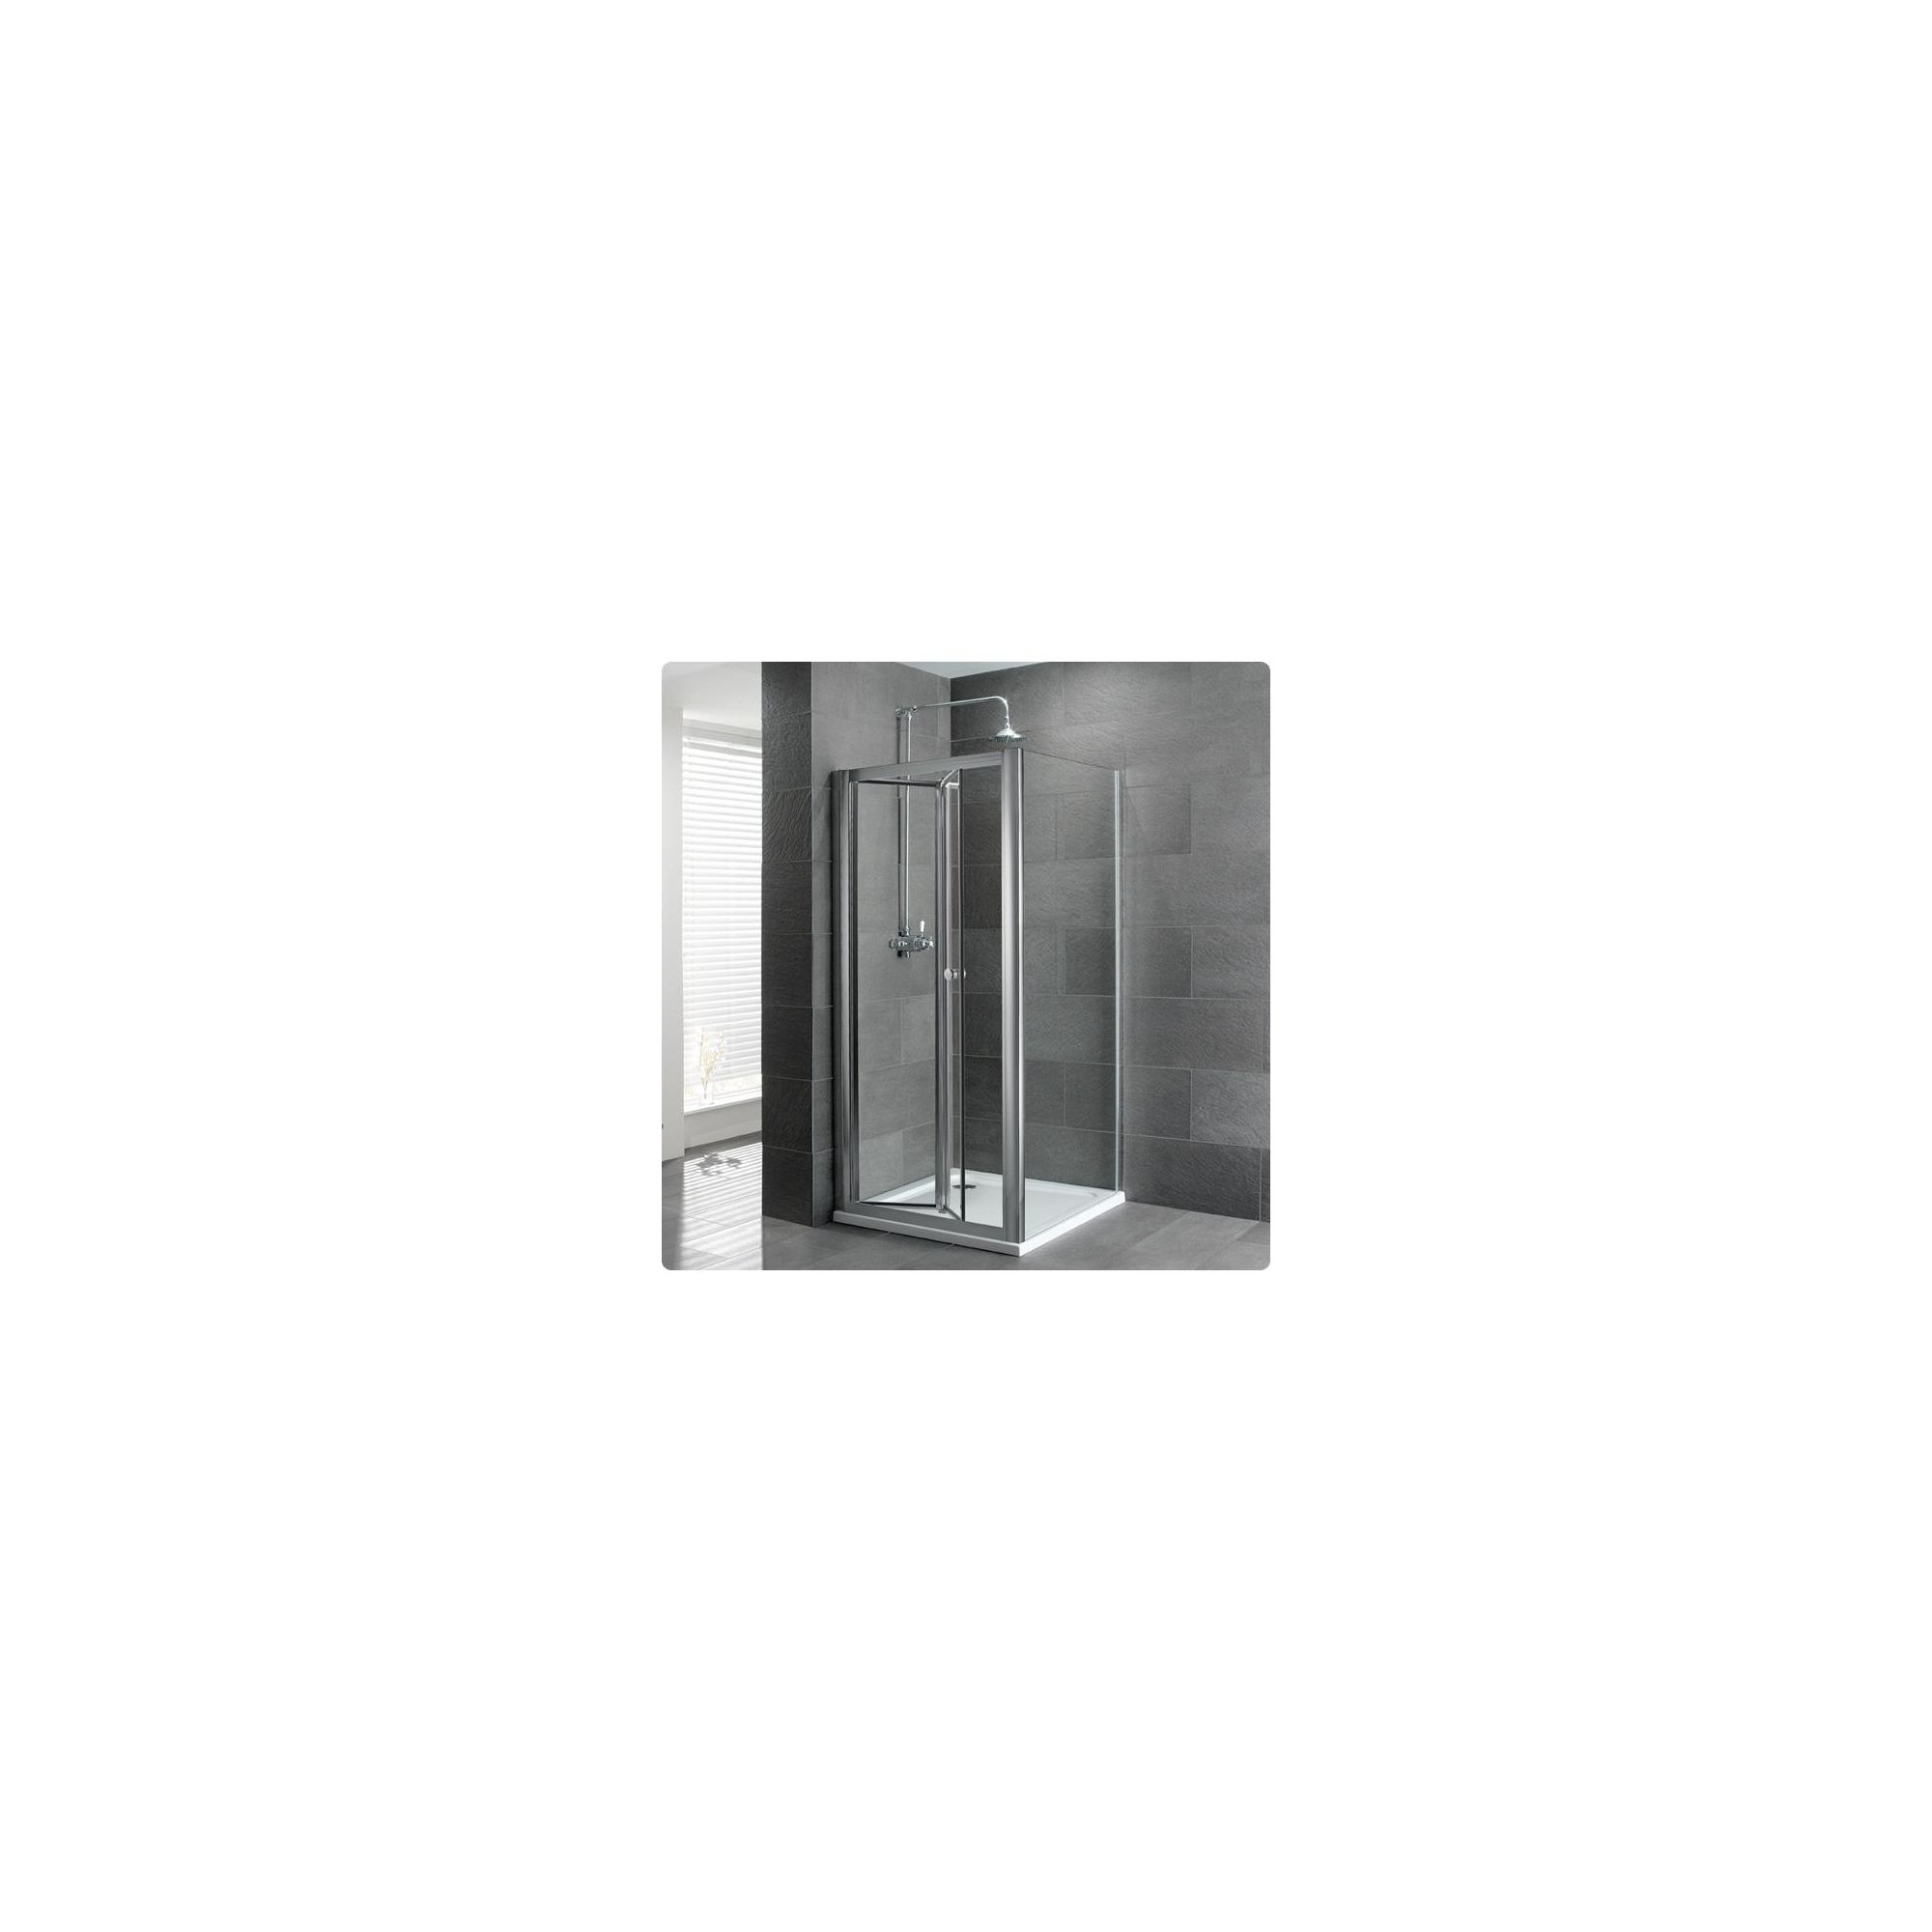 Duchy Select Silver Bi-Fold Door Shower Enclosure, 900mm x 760mm, Standard Tray, 6mm Glass at Tesco Direct